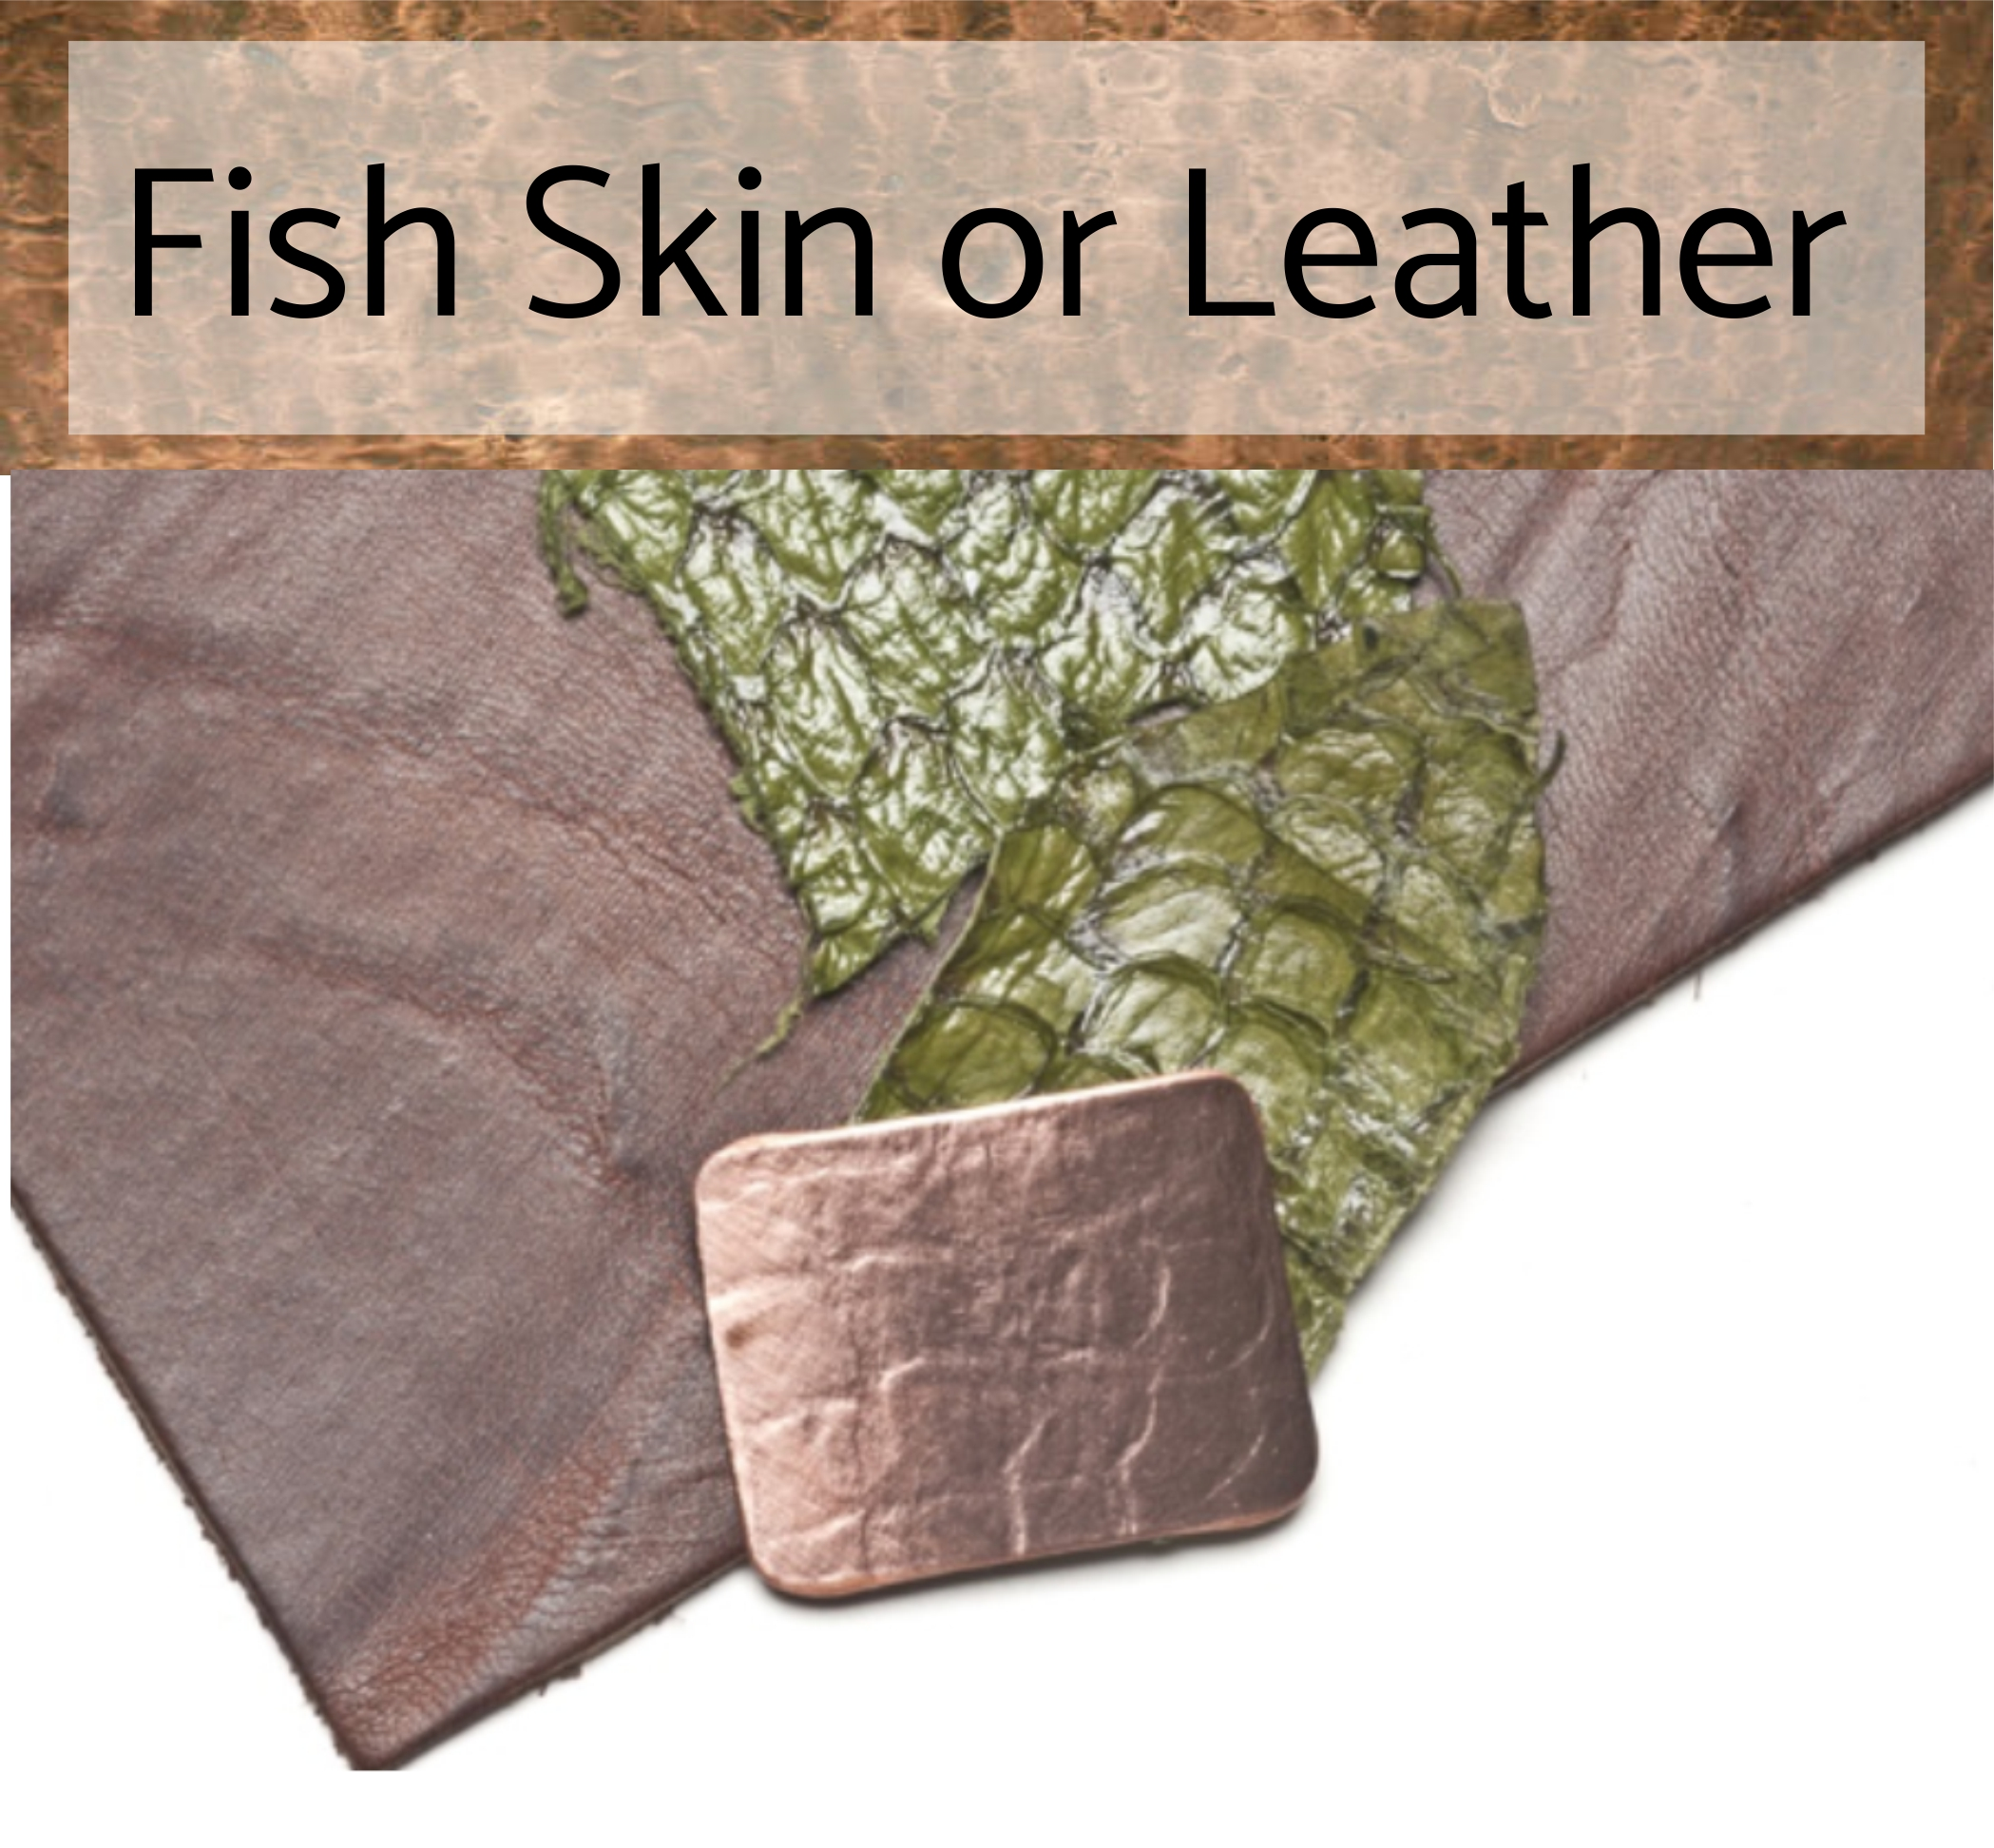 fish skin or leather